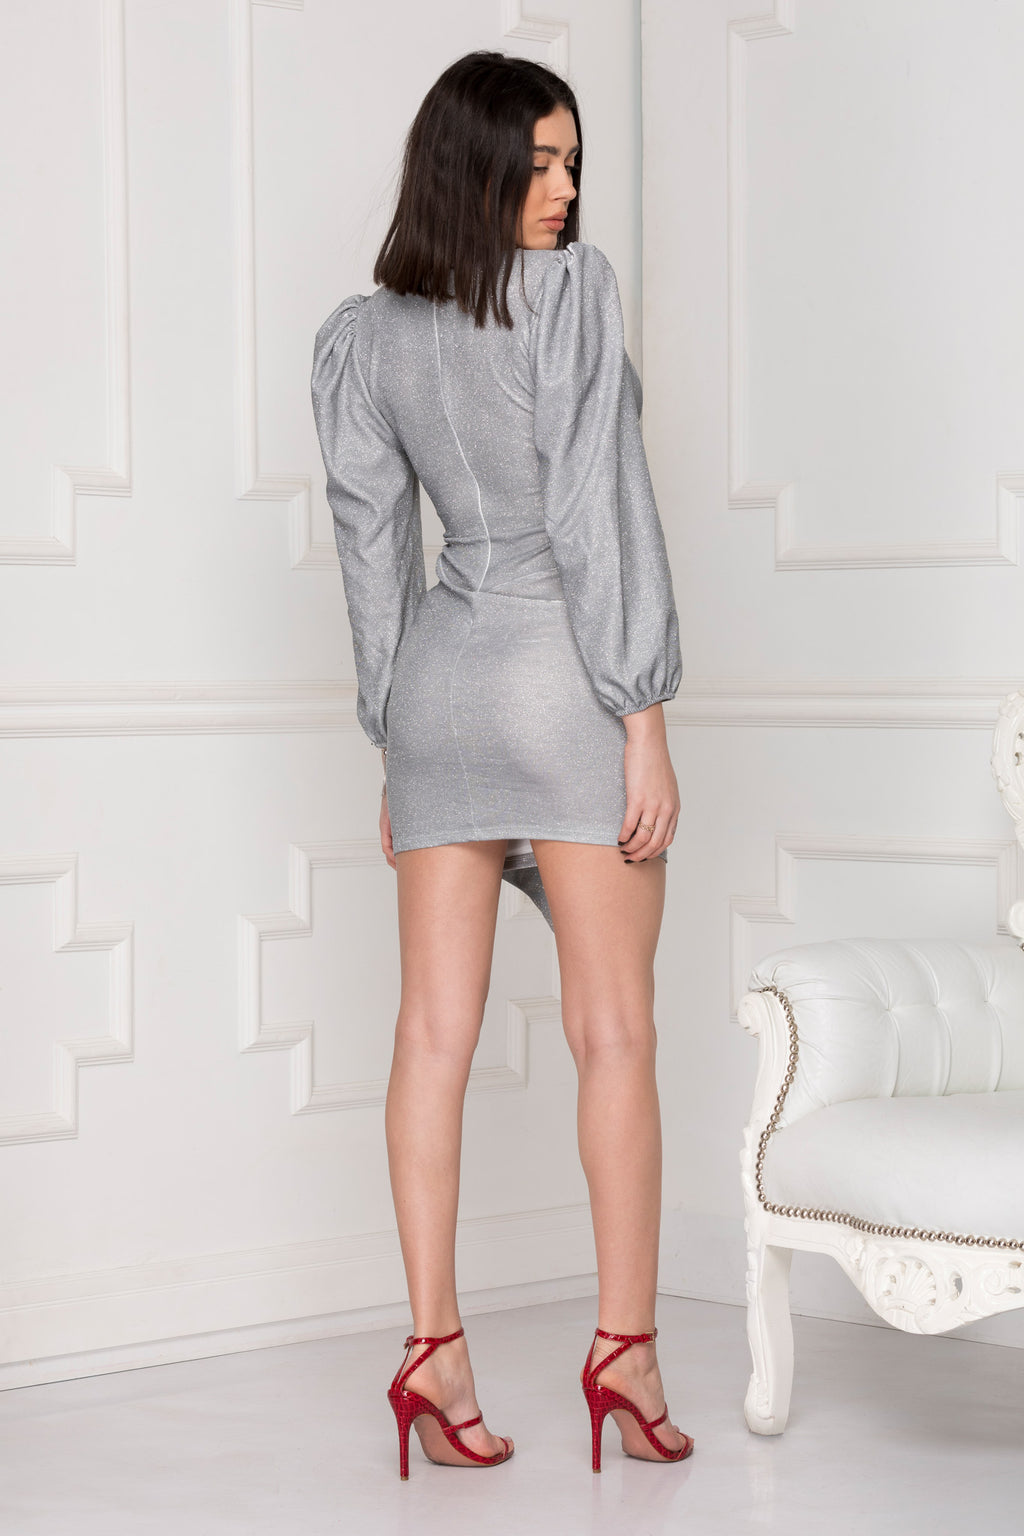 Silver Glitter Luxe Party Dress perfect for last-minute night out.